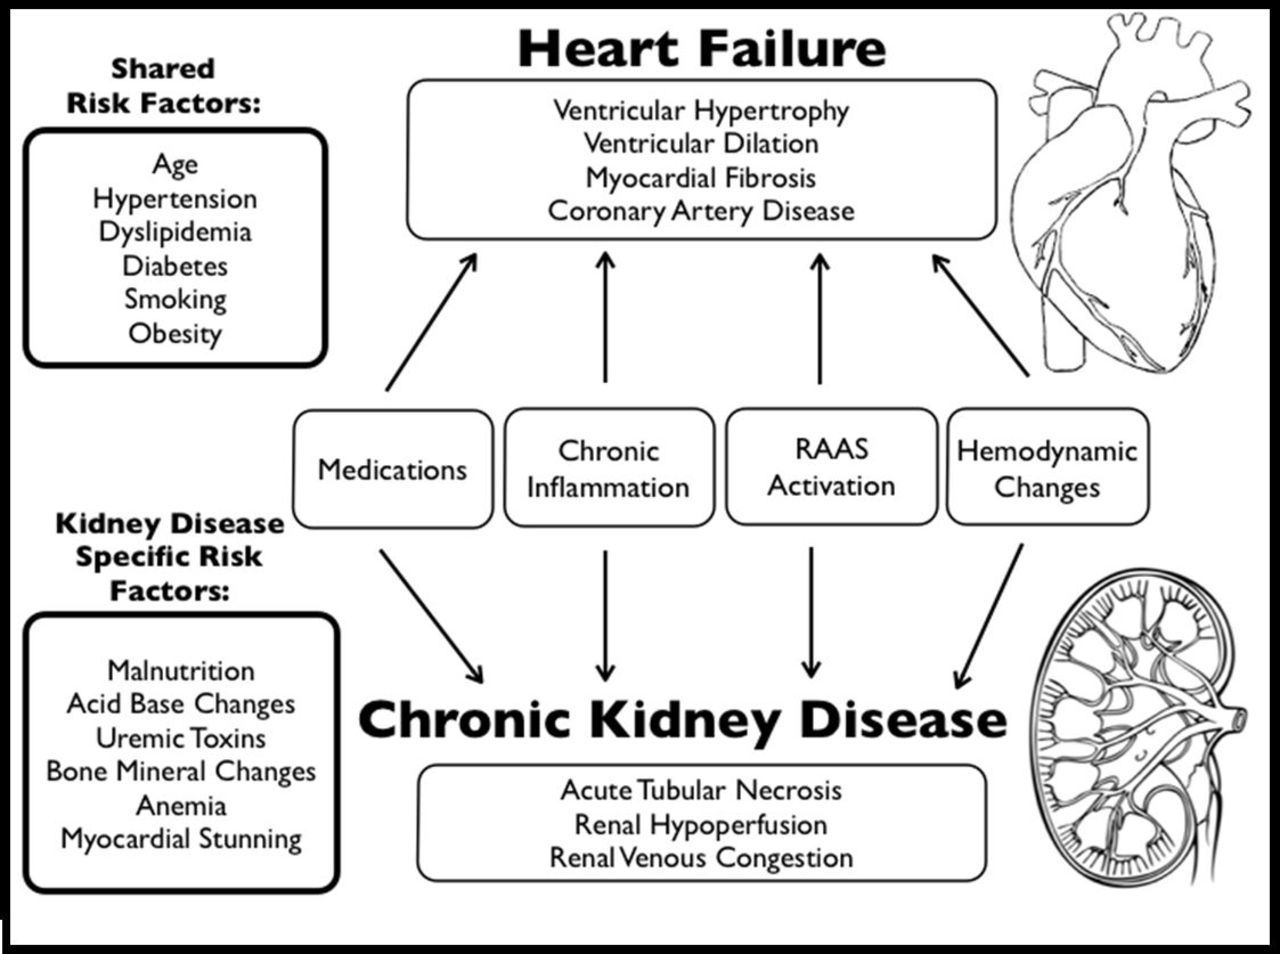 Heart Failure In Patients With Kidney Disease Heart